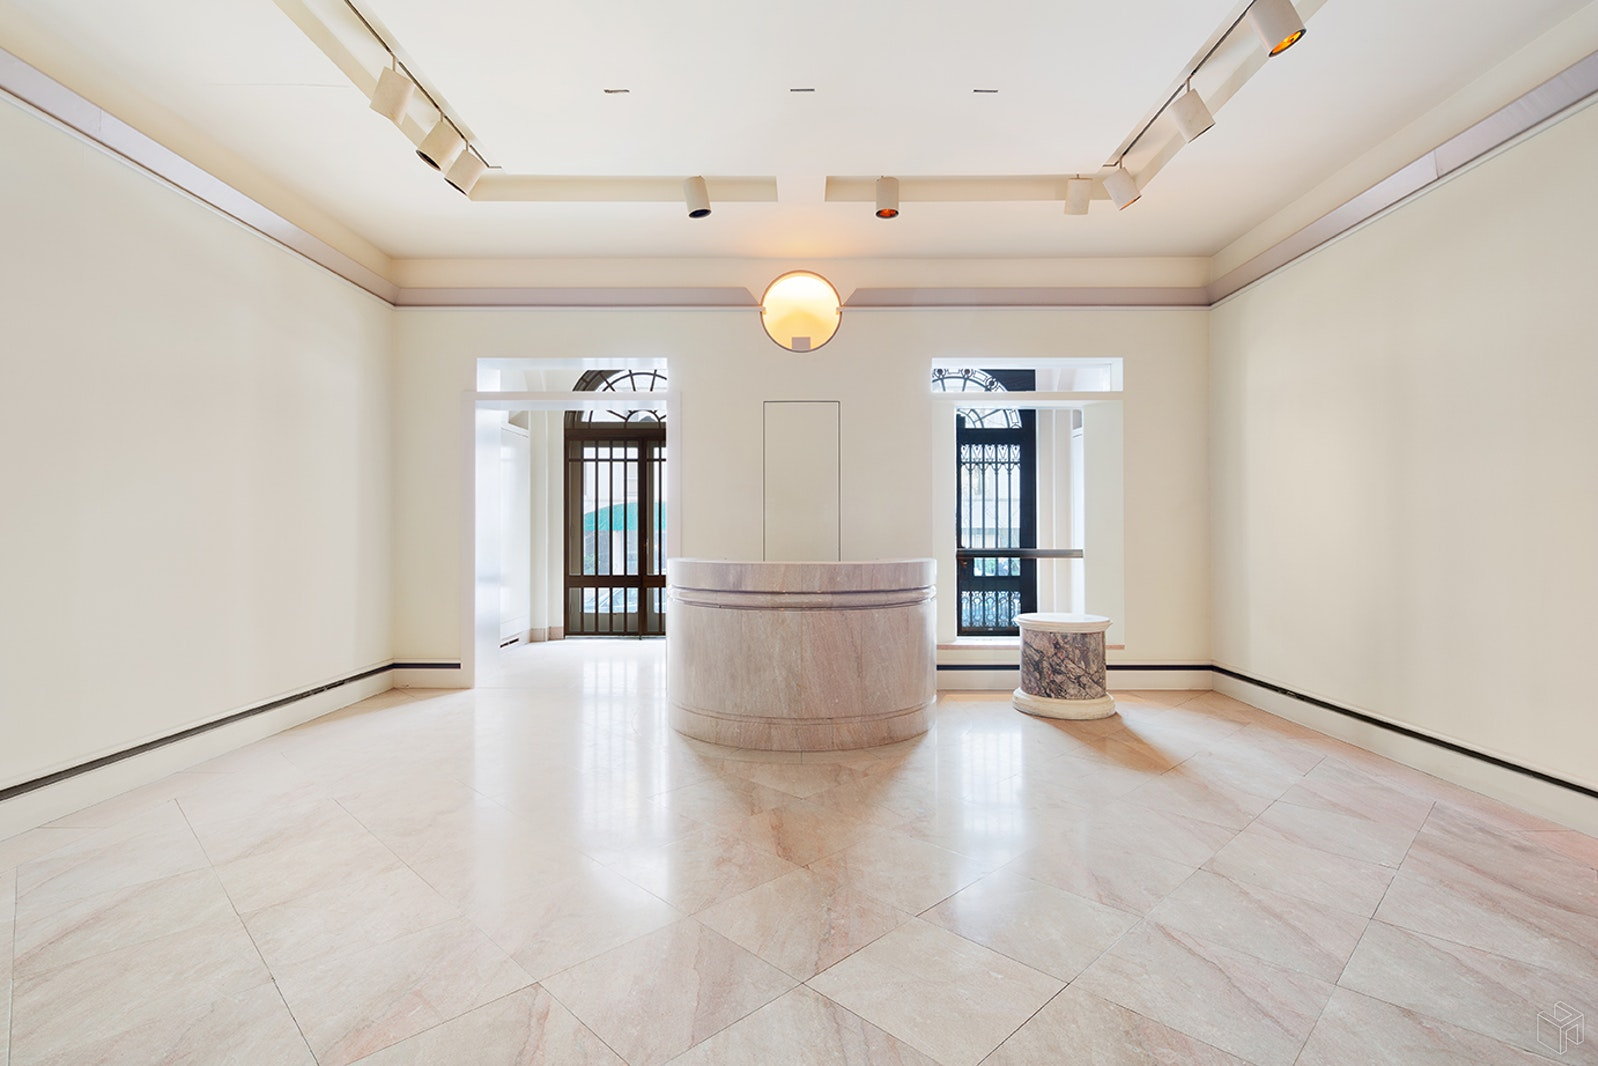 11 East 70th Street Gallery/1A, Upper East Side, NYC, 10021, $10,950,000, Property For Sale, Halstead Real Estate, Photo 3